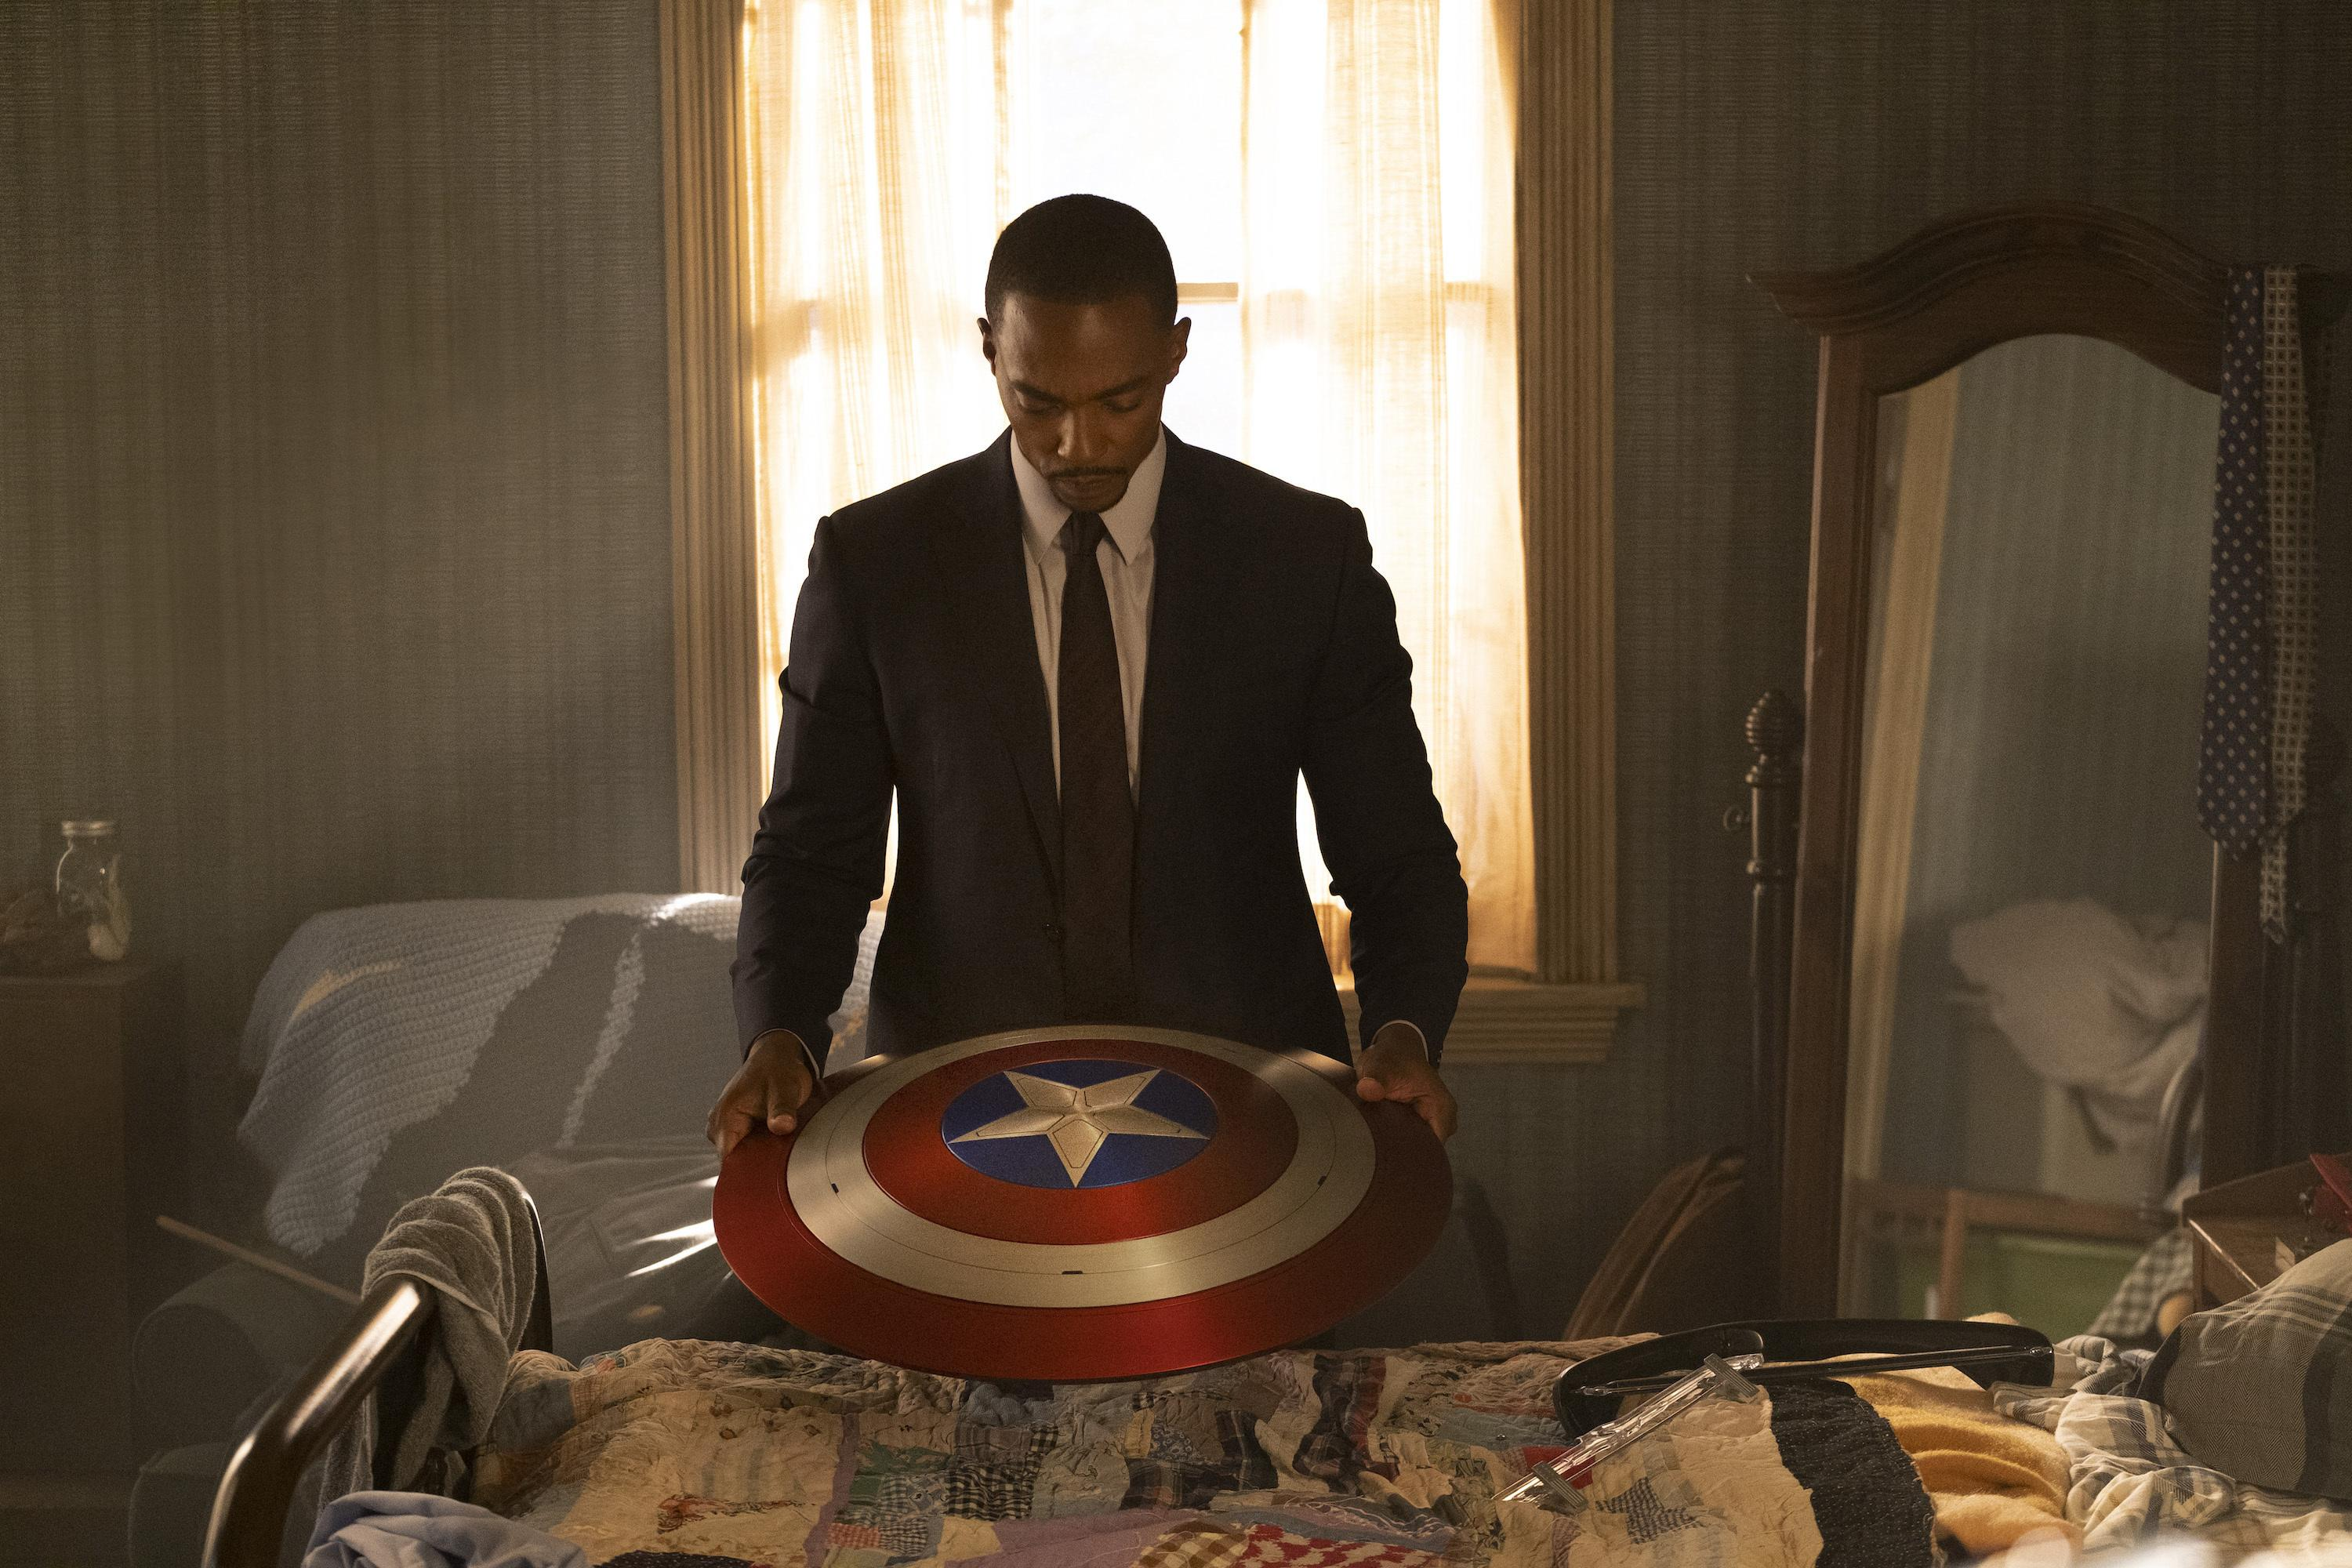 Anthony Mackie as Sam Wilson/Falcon holding Captain America's shield in 'The Falcon and the Winter Soldier.'